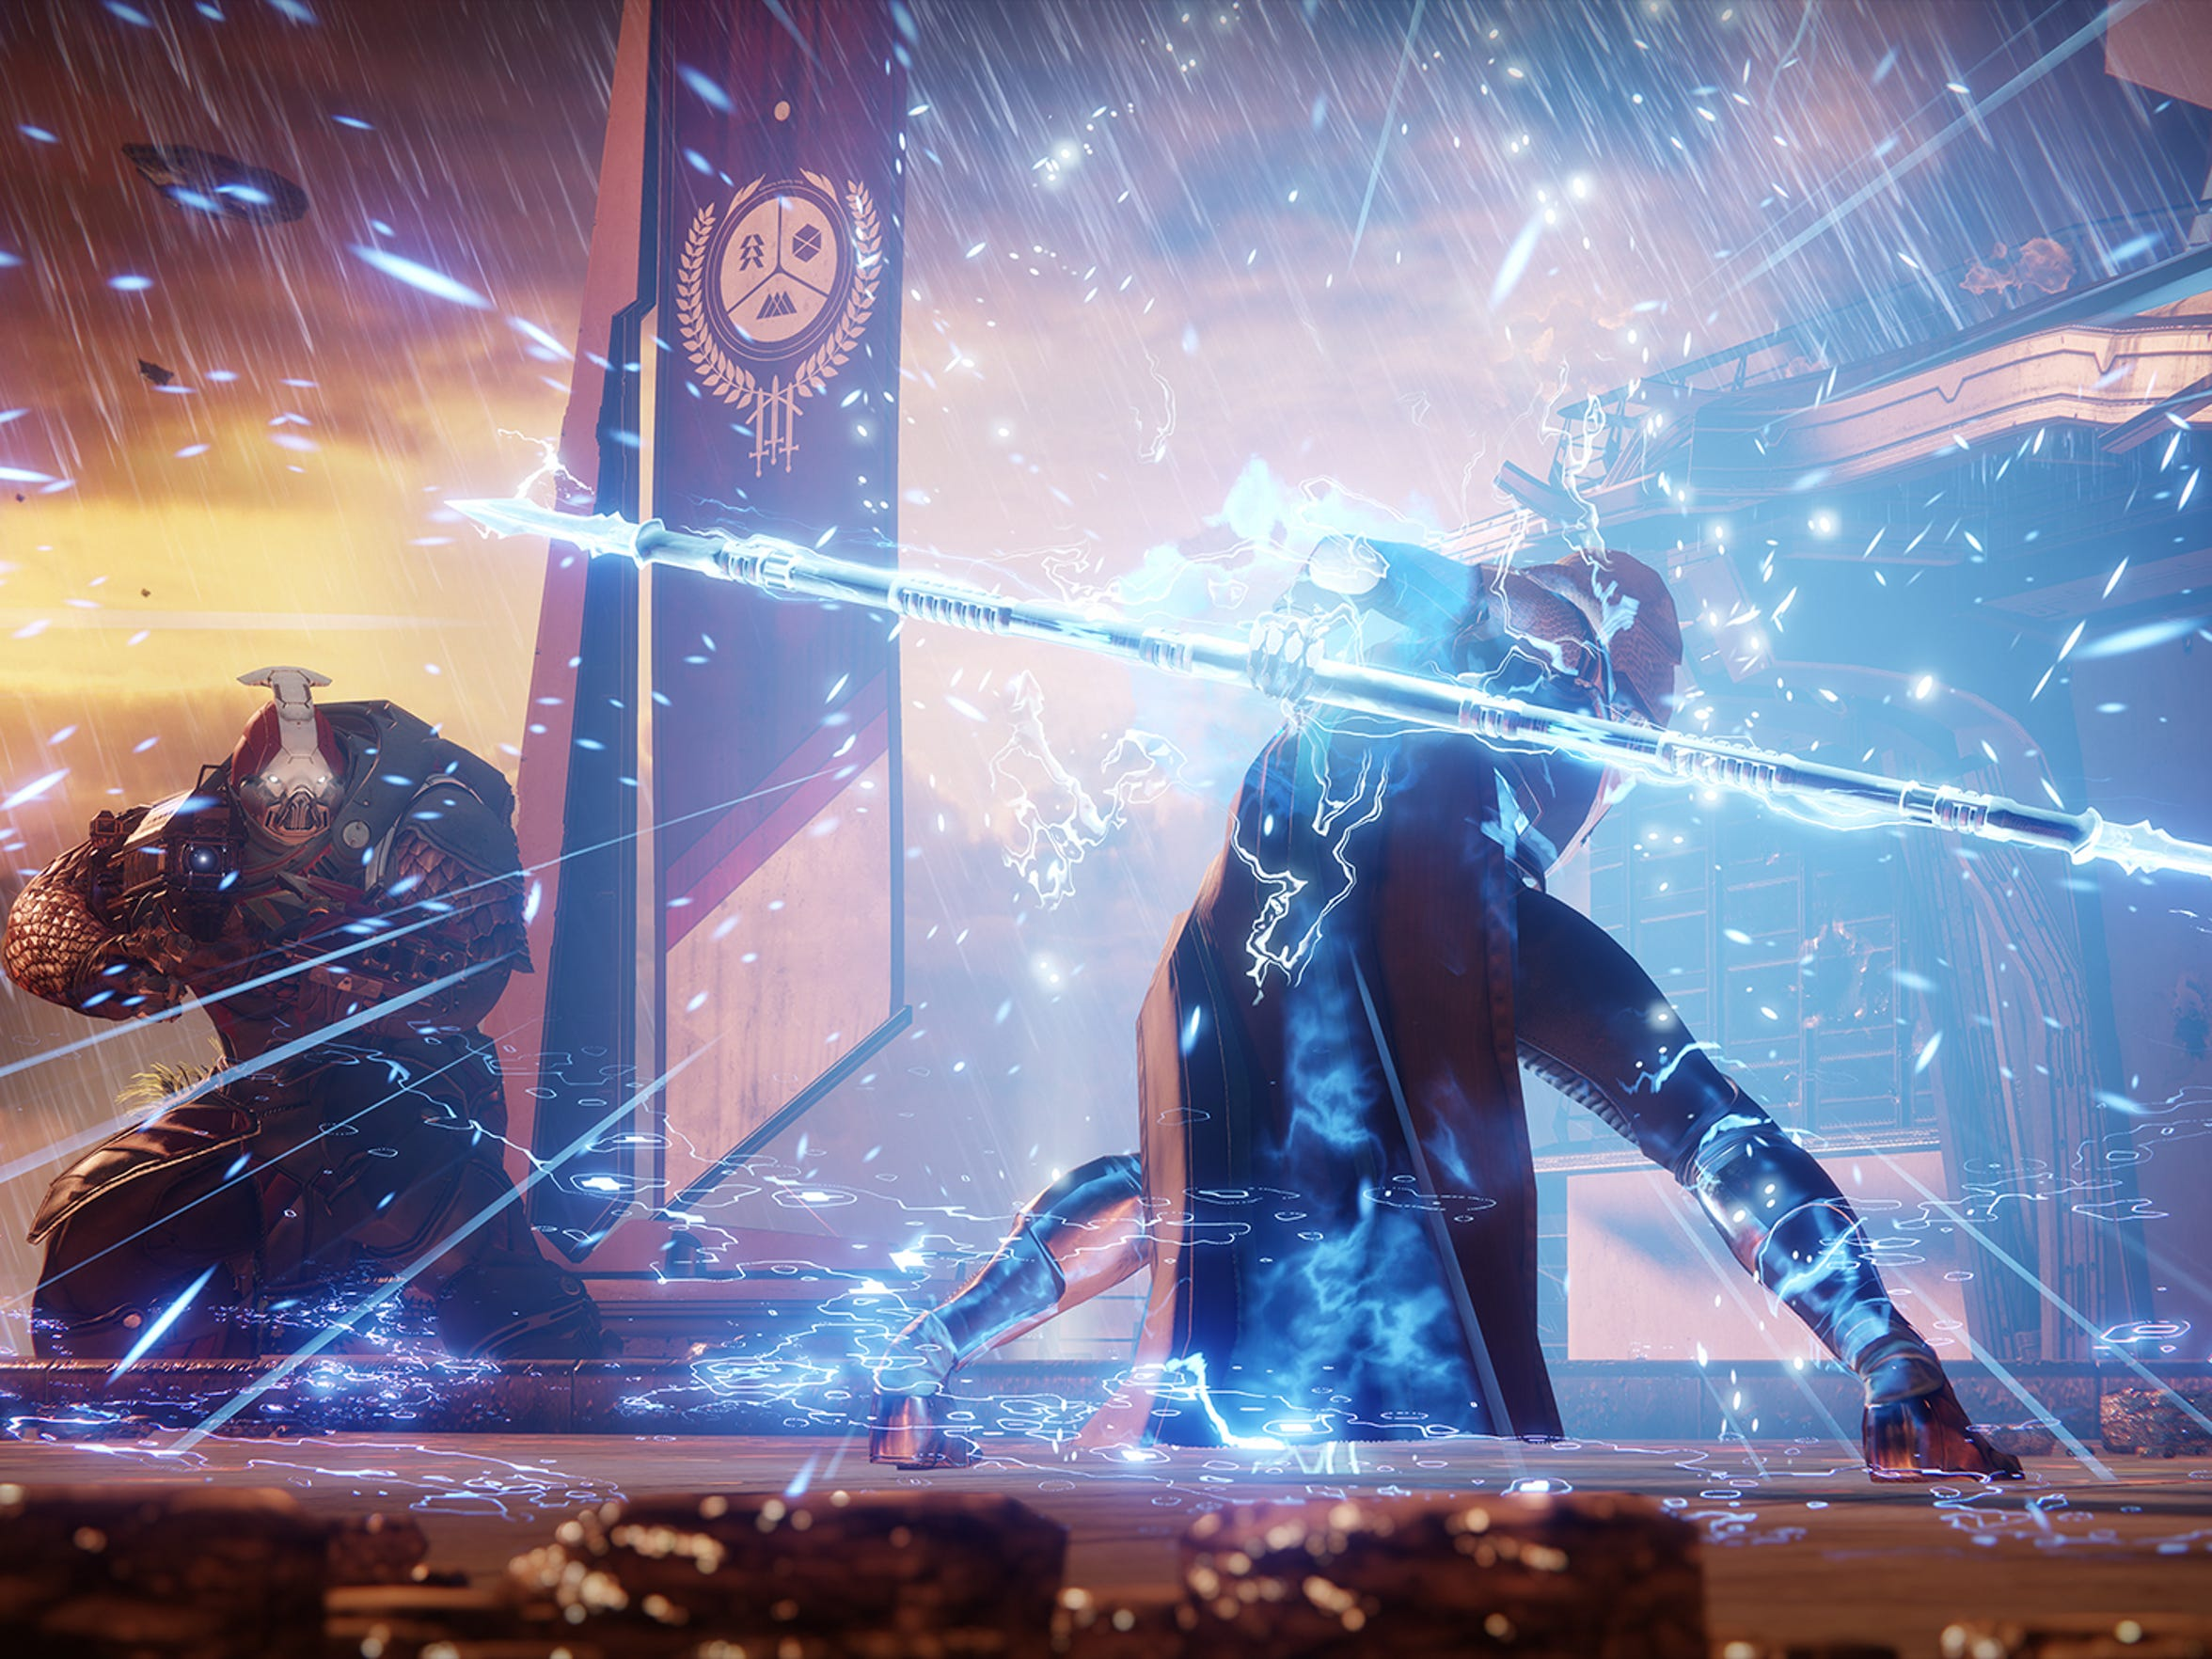 Destiny 2 for PS4 and Xbox One.